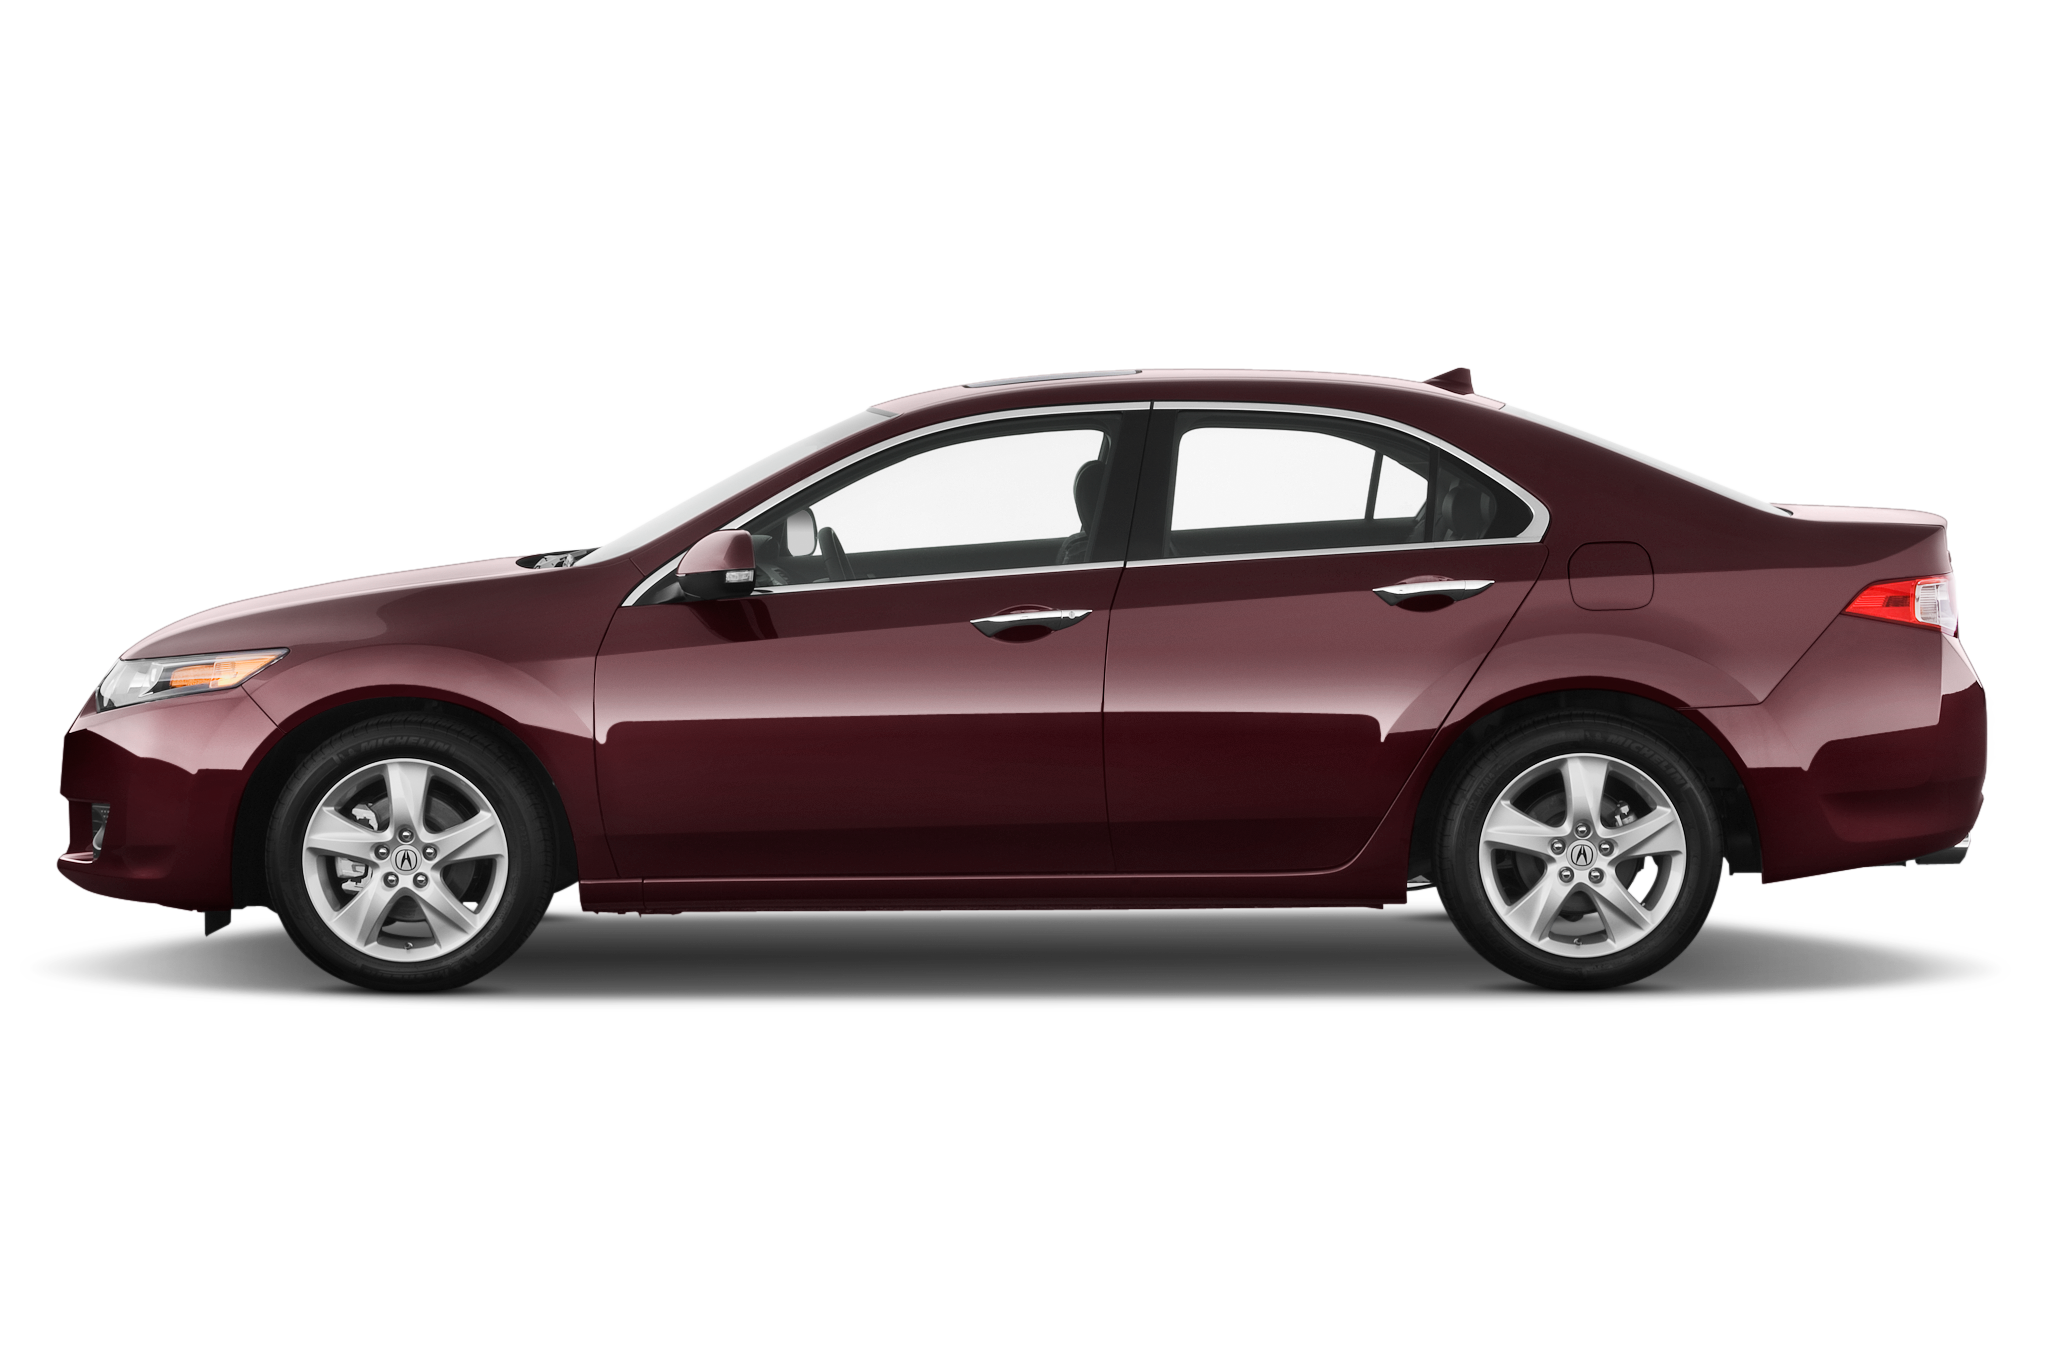 2010 acura tsx v 6 first look latest news features and reviews automobile magazine. Black Bedroom Furniture Sets. Home Design Ideas